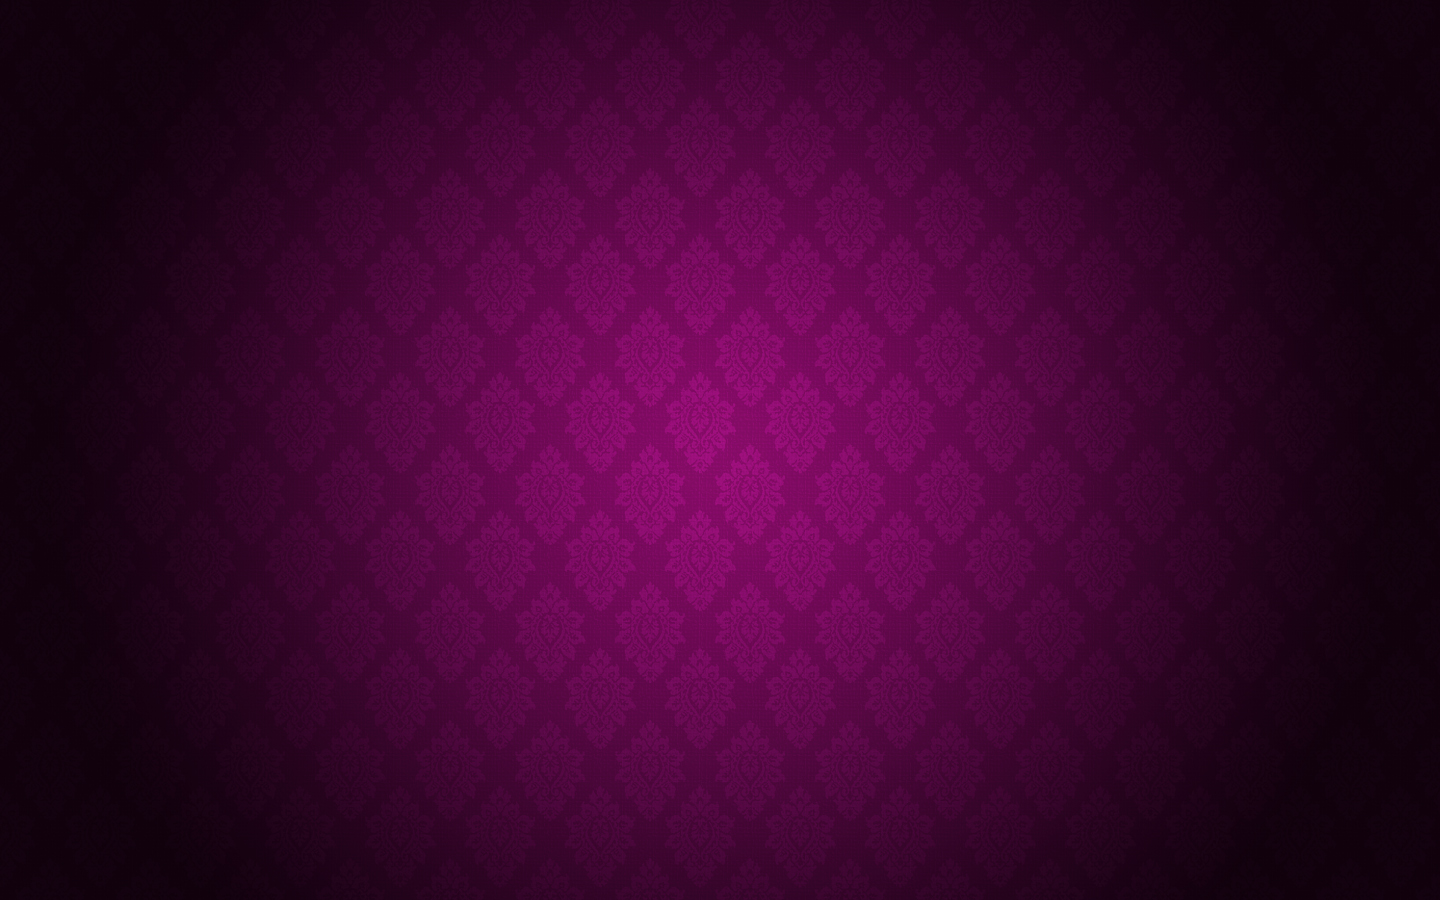 Pink And Purple Backgrounds 1440x900